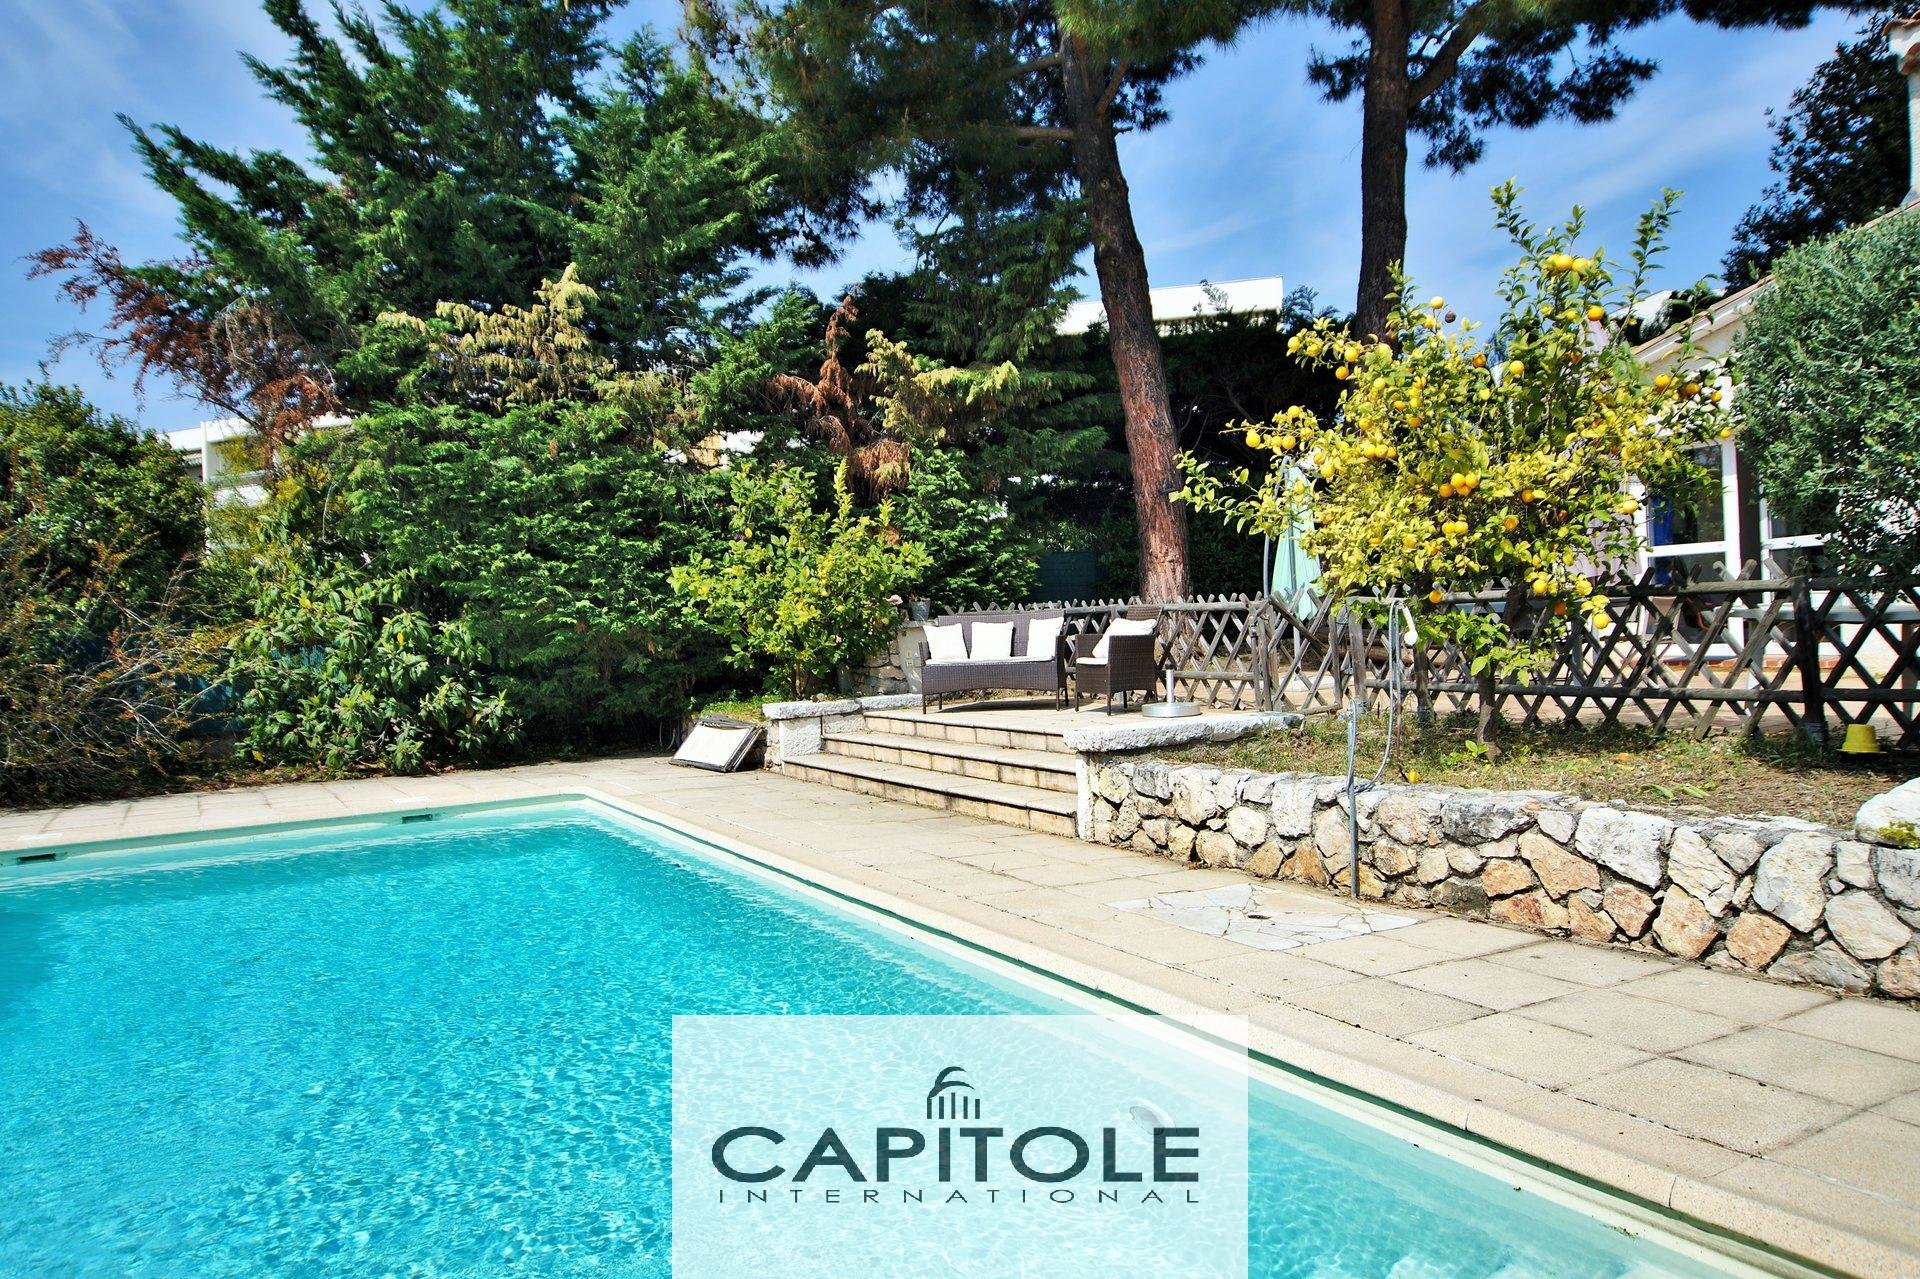 For sale, Antibes, beautiful 7 room detached villa 230 m², swimming pool, garden